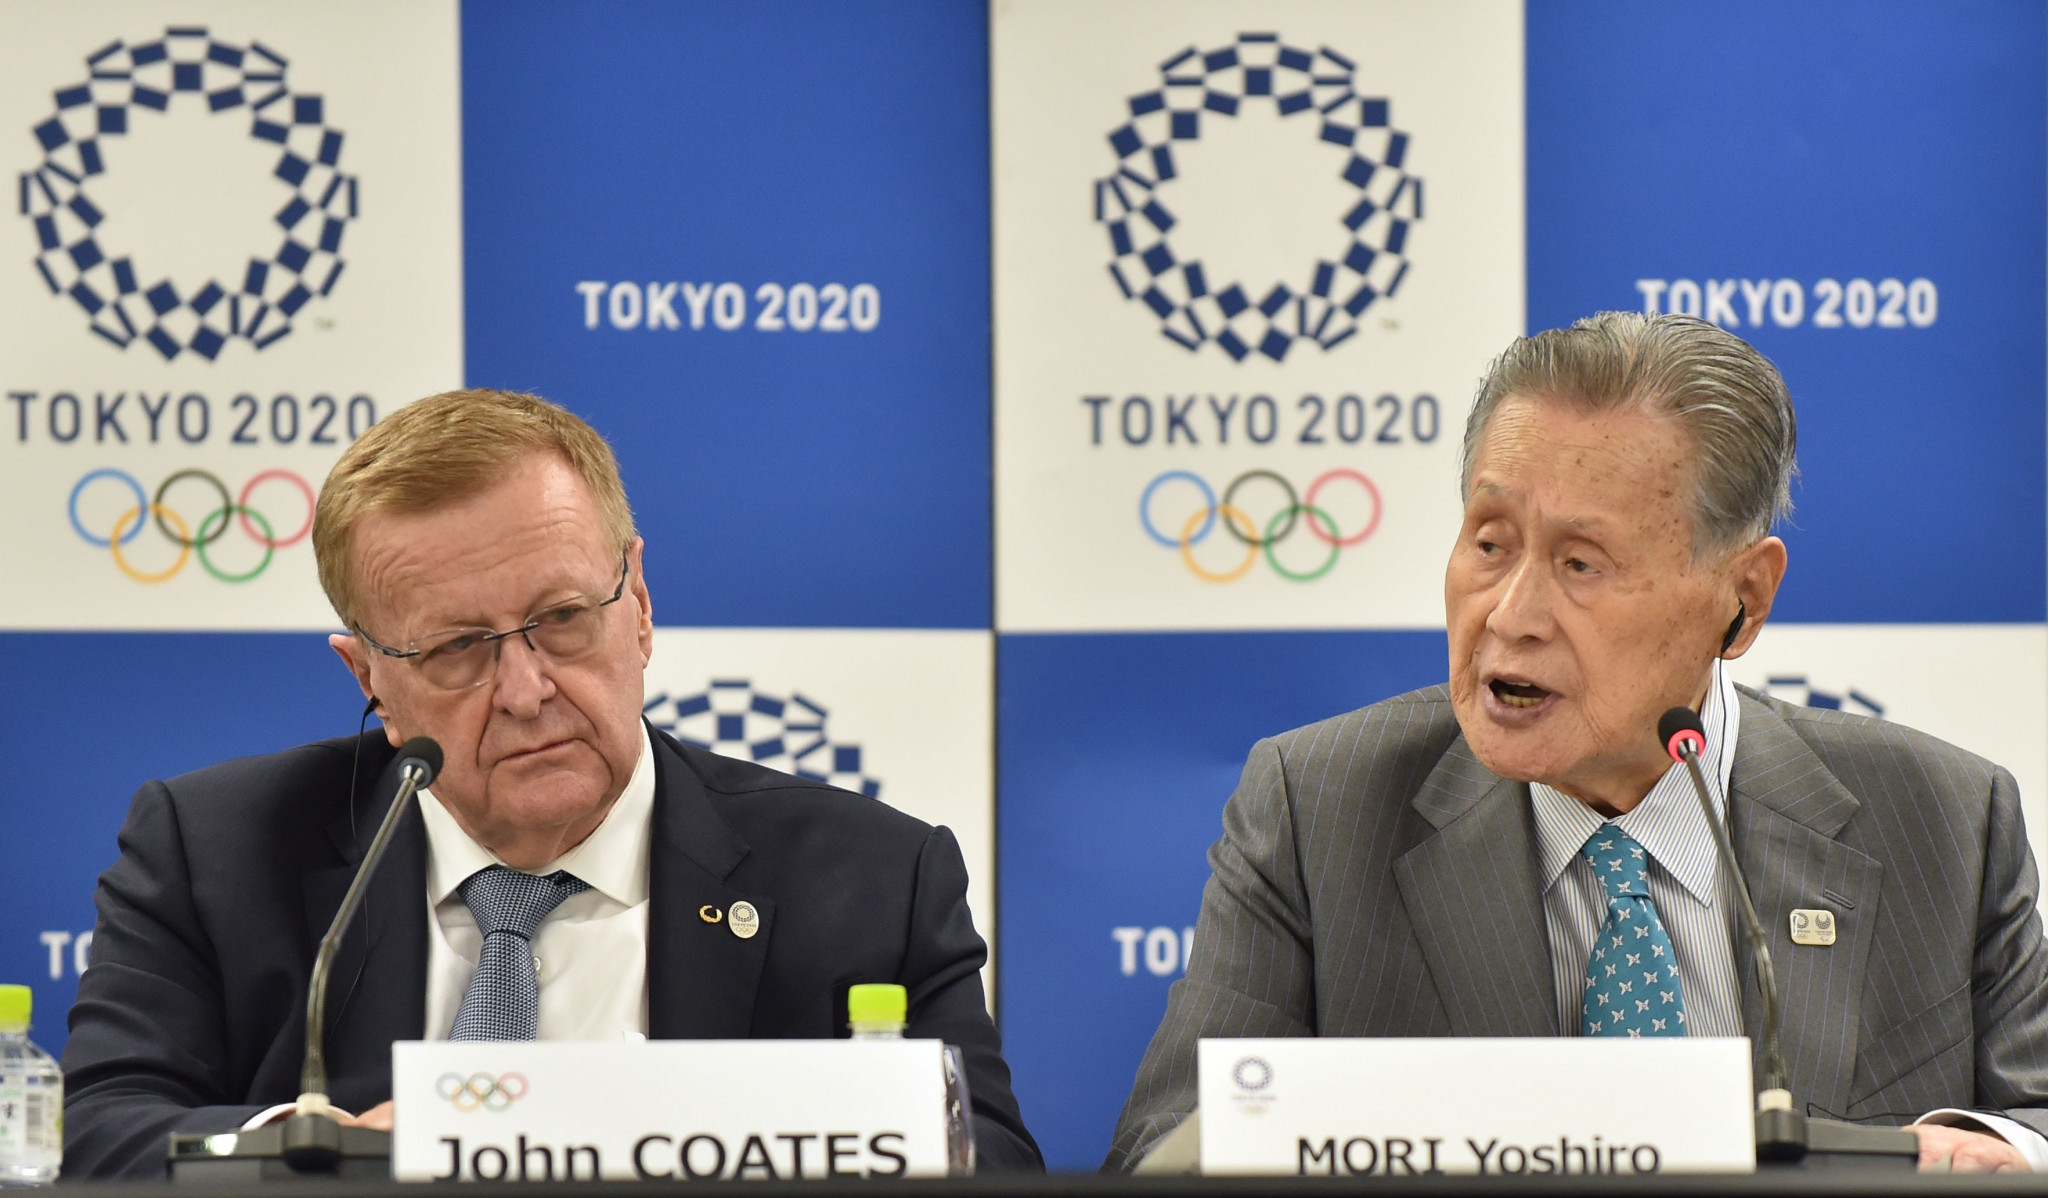 AOC President John Coates, left, has led the IOC Coordination Commission in Tokyo ©Getty Images